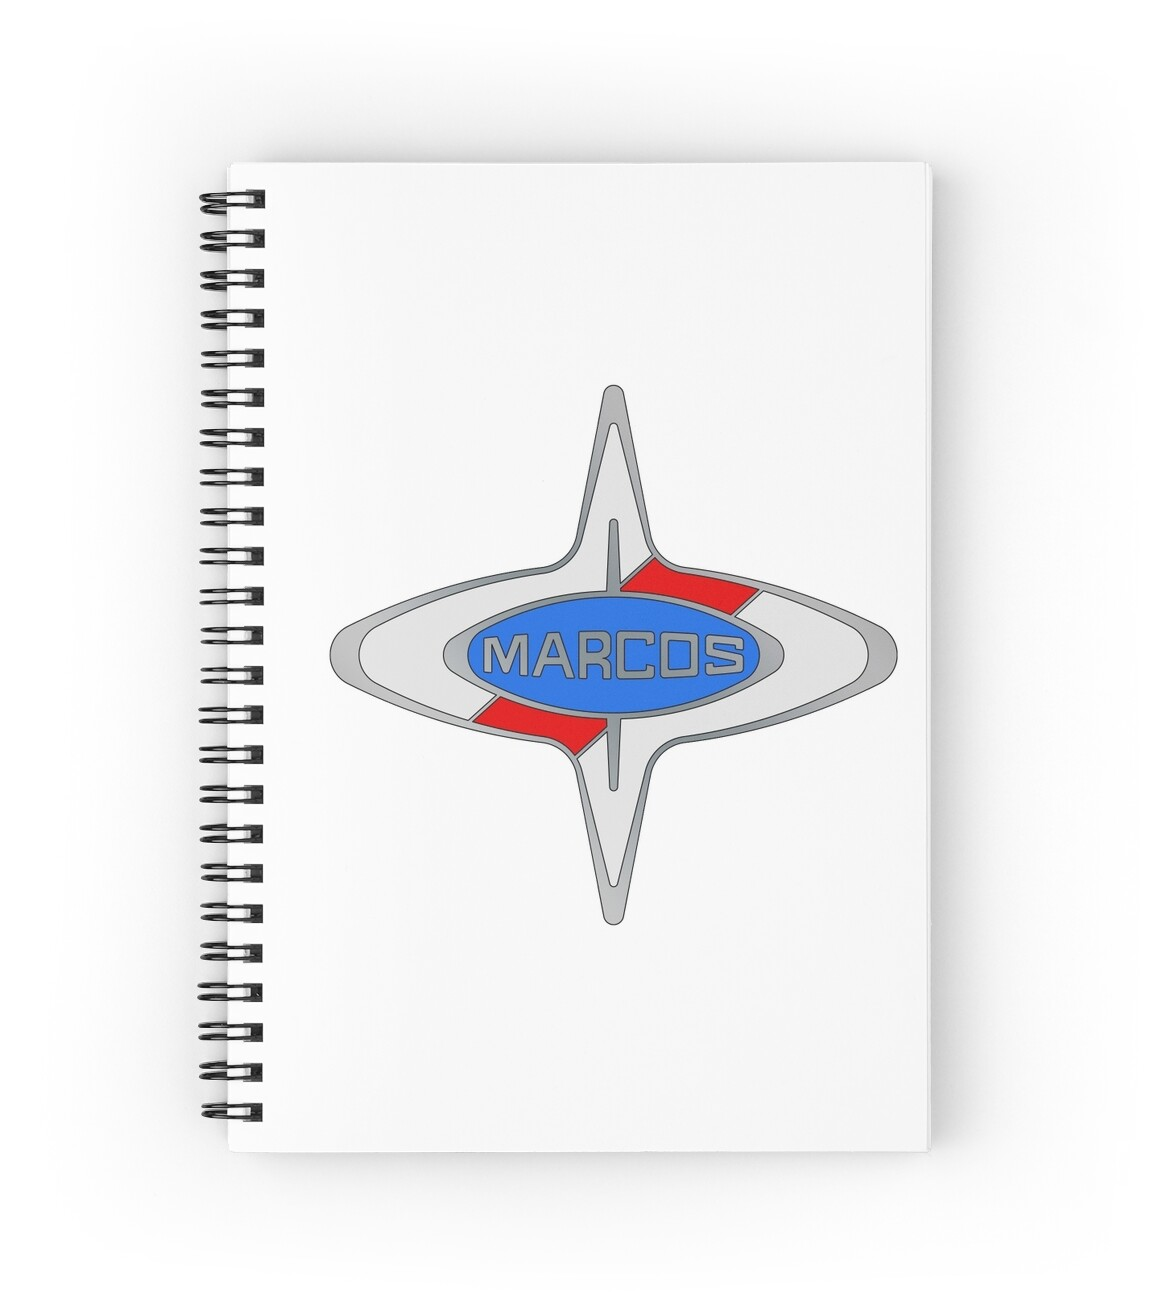 marcos car badge colour fill black outline by adamasage - Fill The Colour In Pictures